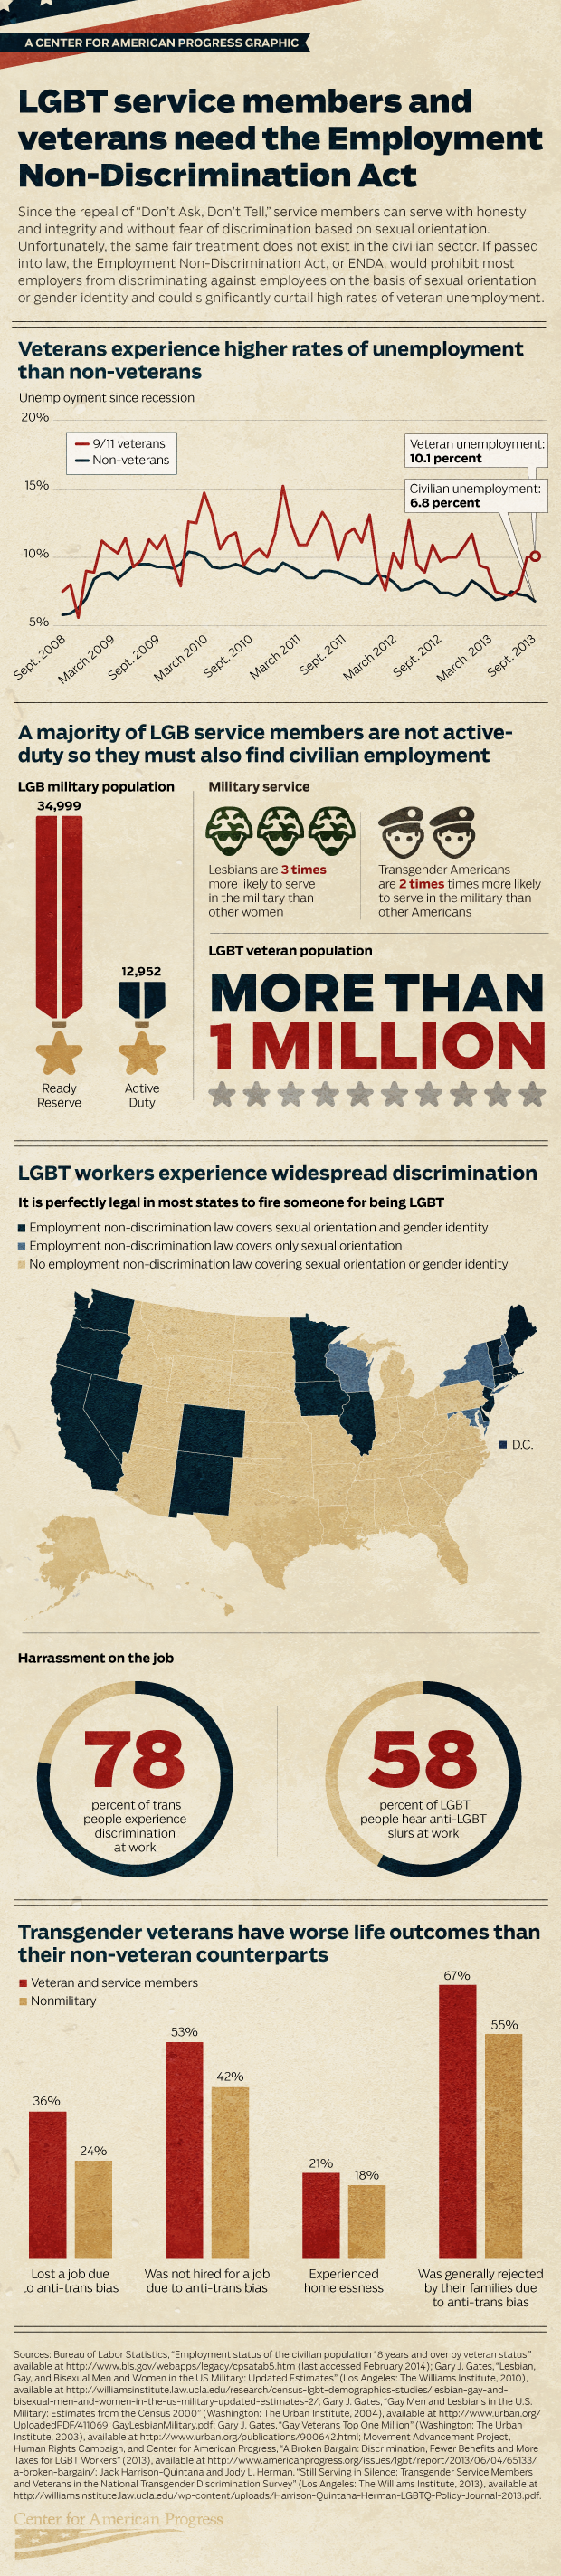 Infographic: LGBT Service Members and Veterans Need the Employment Non-Discrimination Act